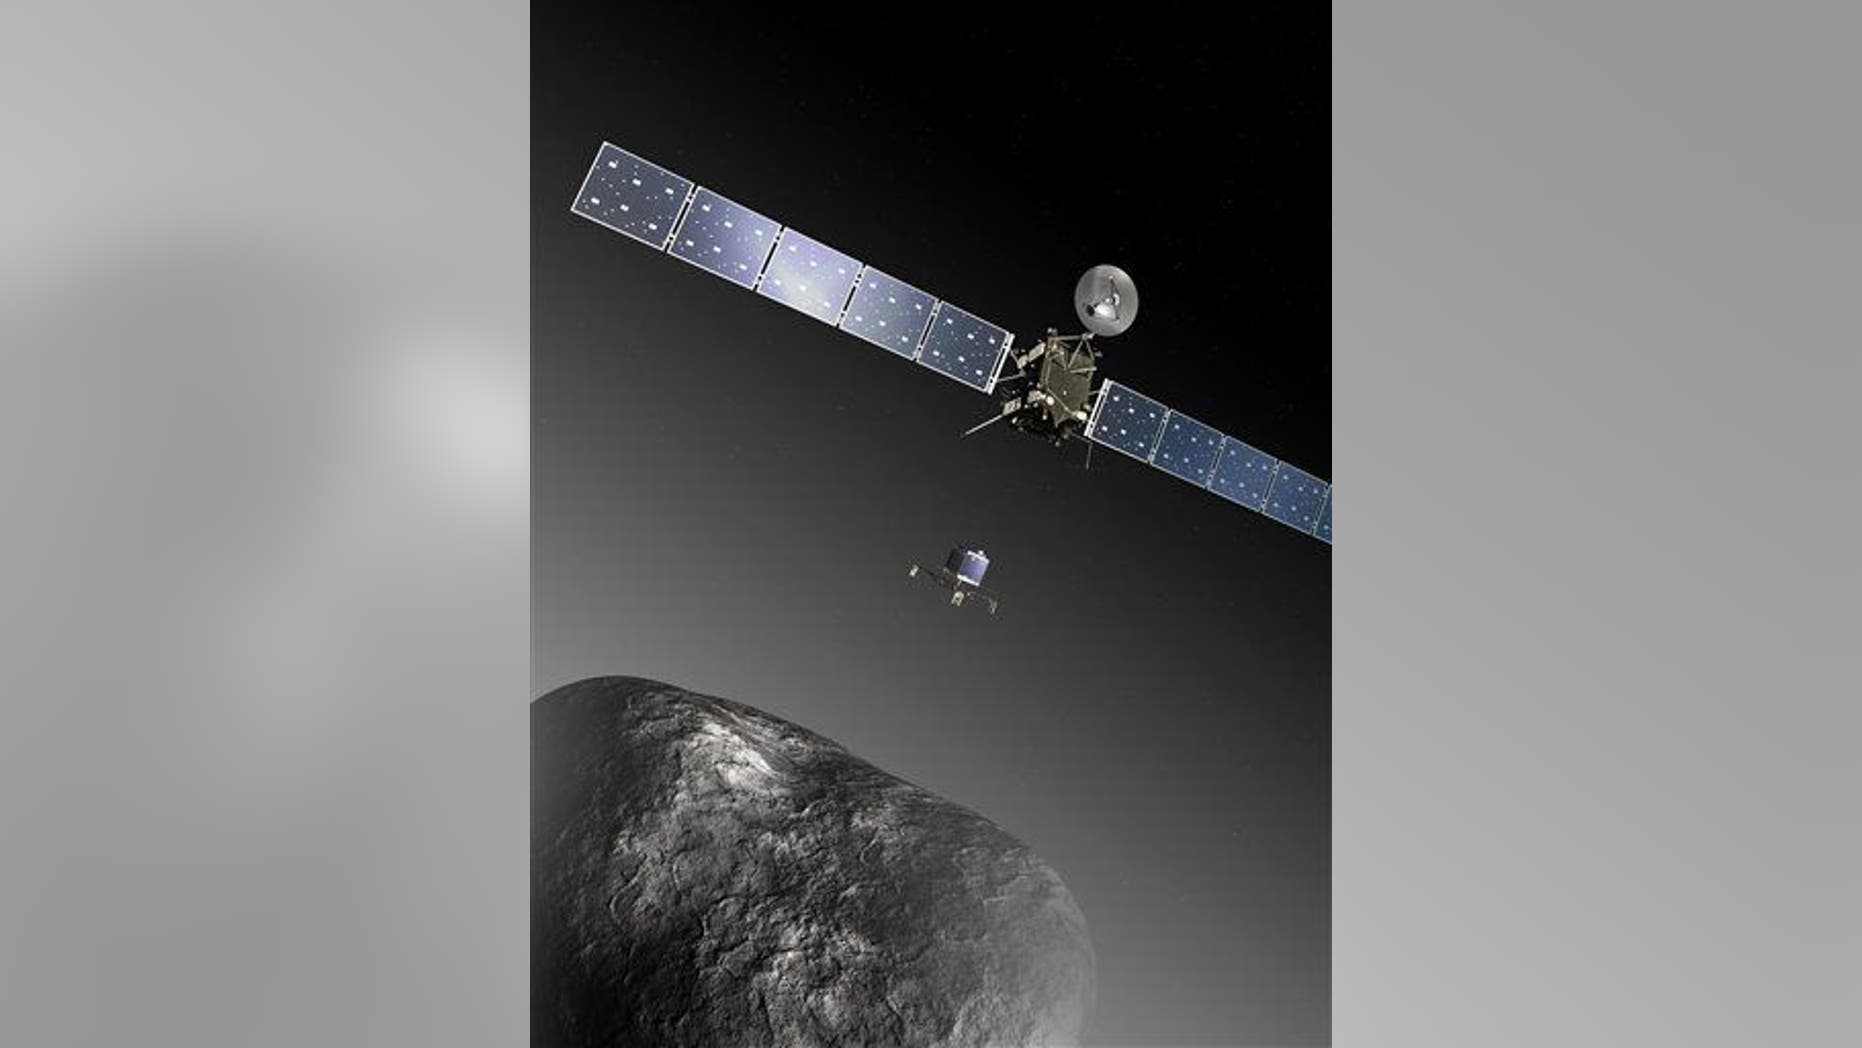 An artist's impression of the Rosetta orbiter deploying the Philae lander to comet 67P/Churyumov–Gerasimenko.